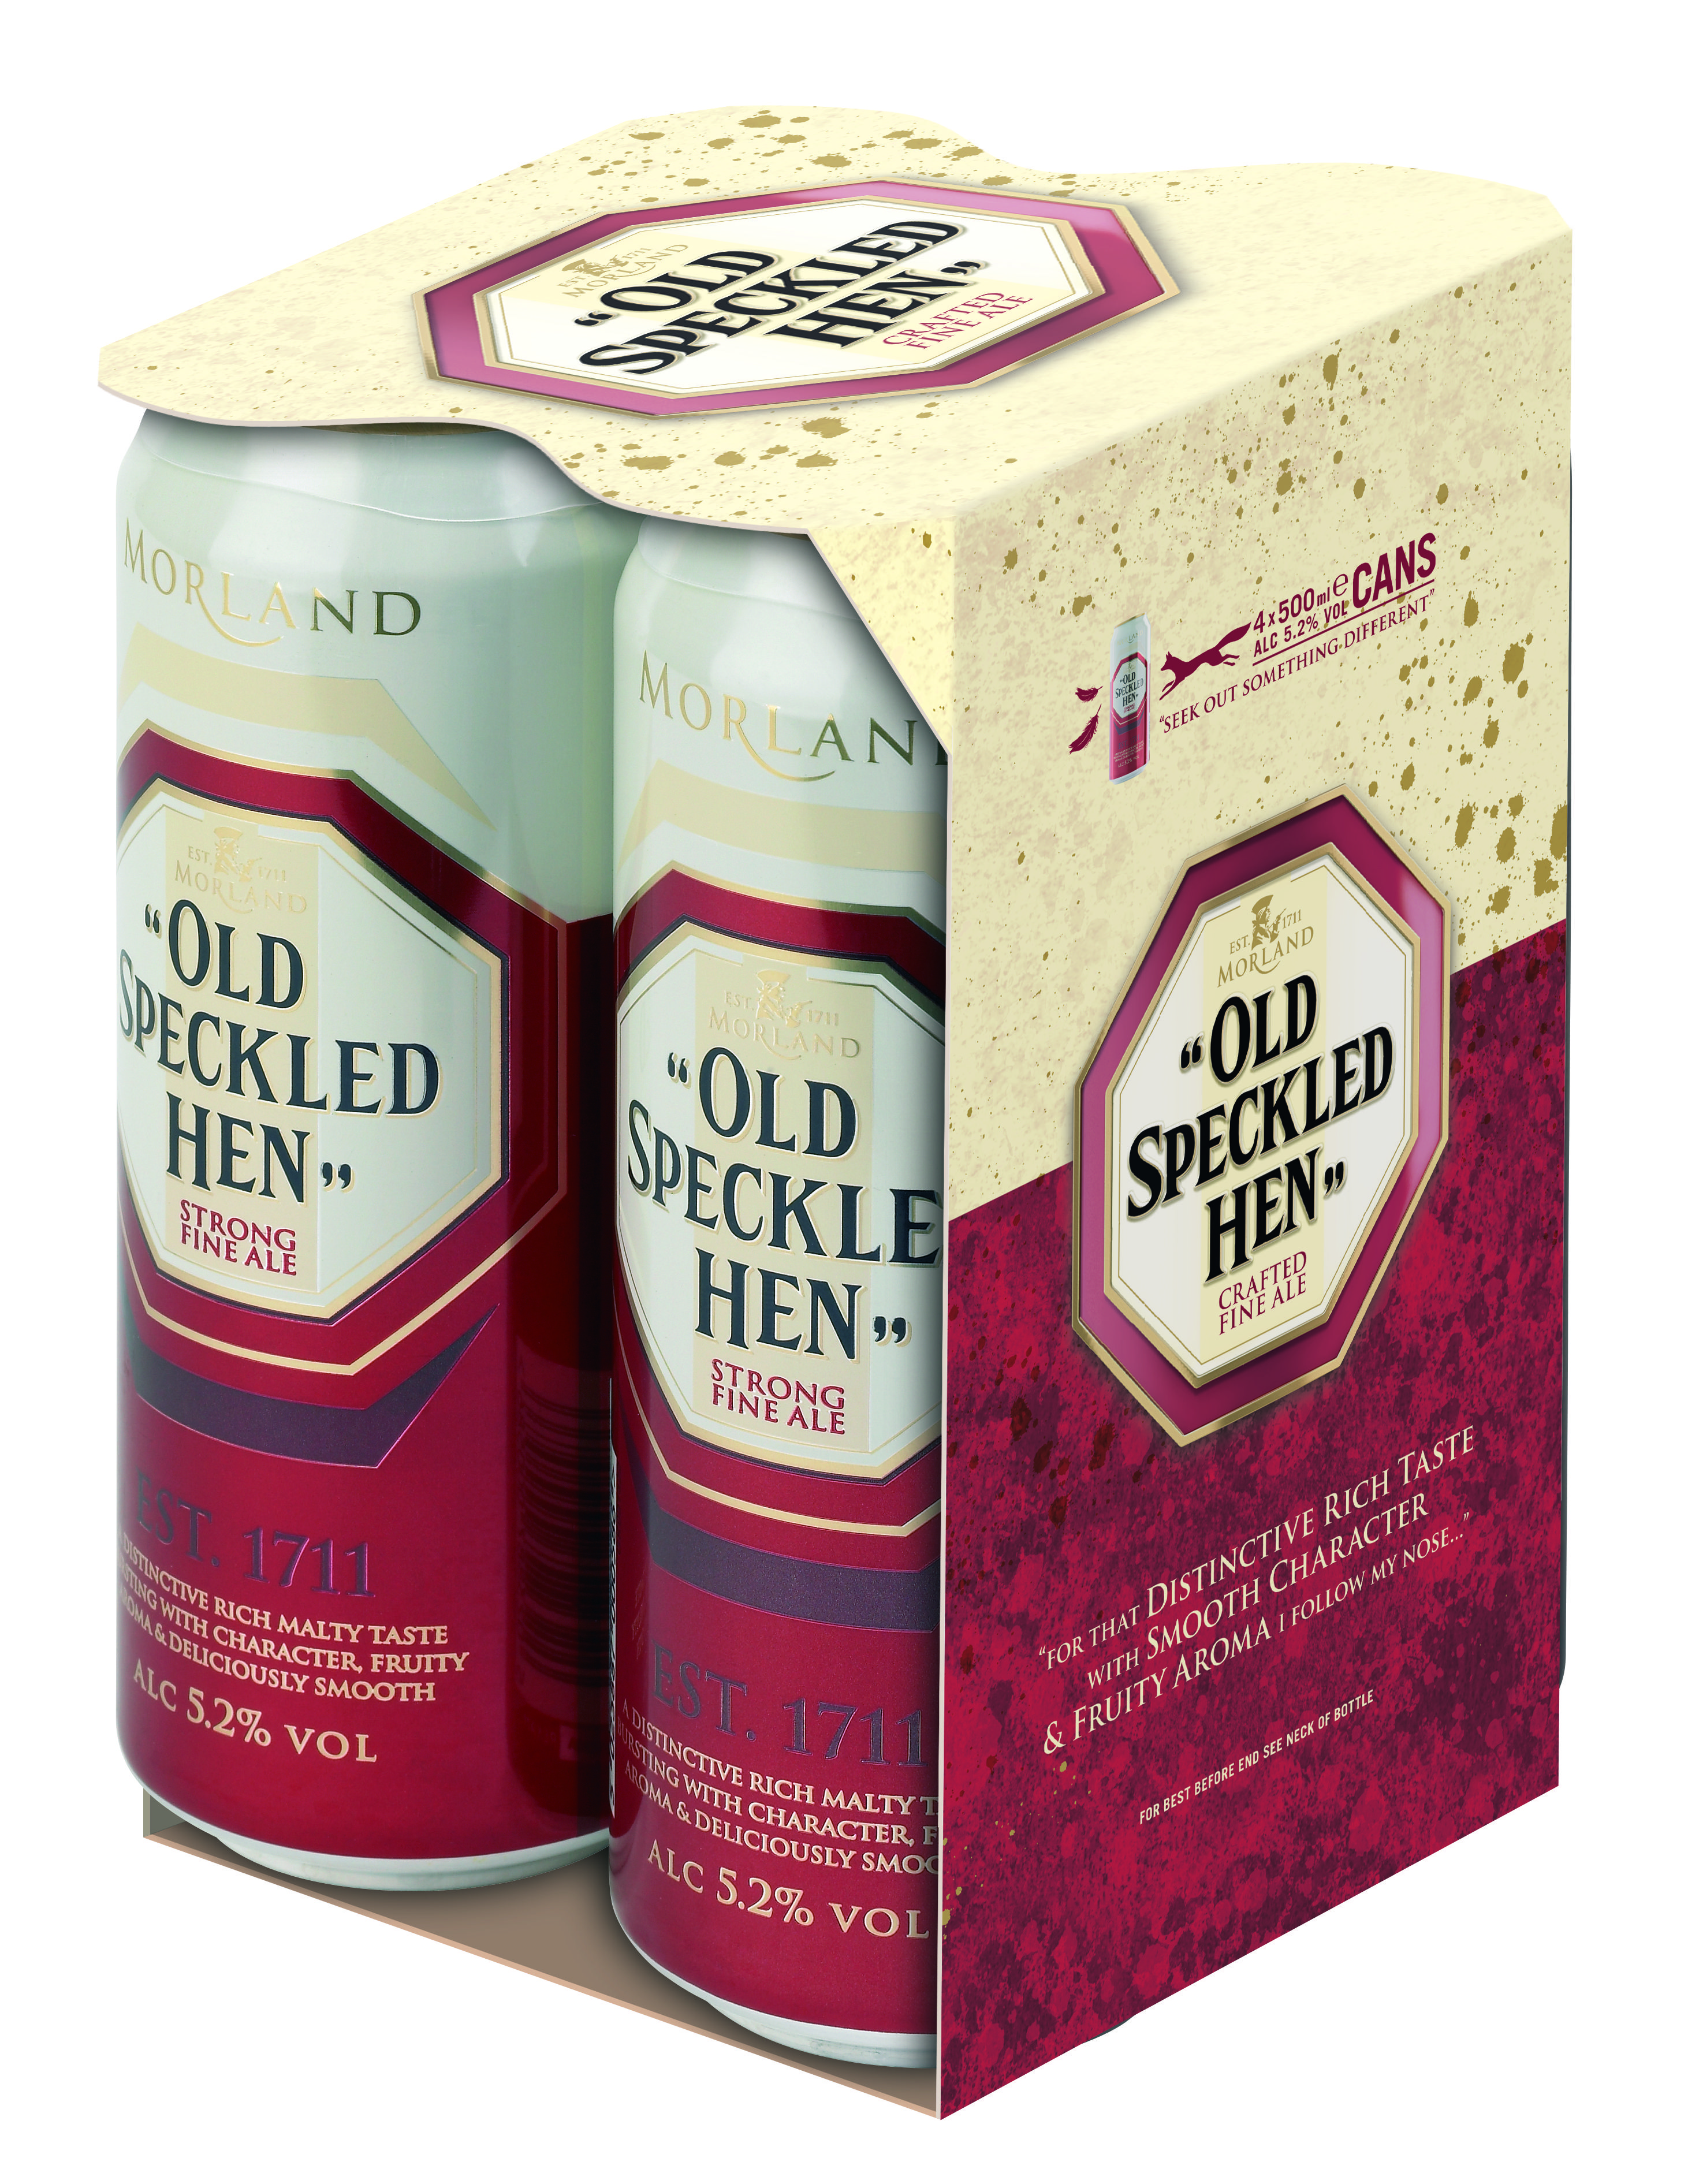 Yes It S Better From Cans All Beer Is But This One Is Special When You Pop The Top A Nitrous Oxide Widget On Organic Lemons Old Speckled Hen Lemon Vodka